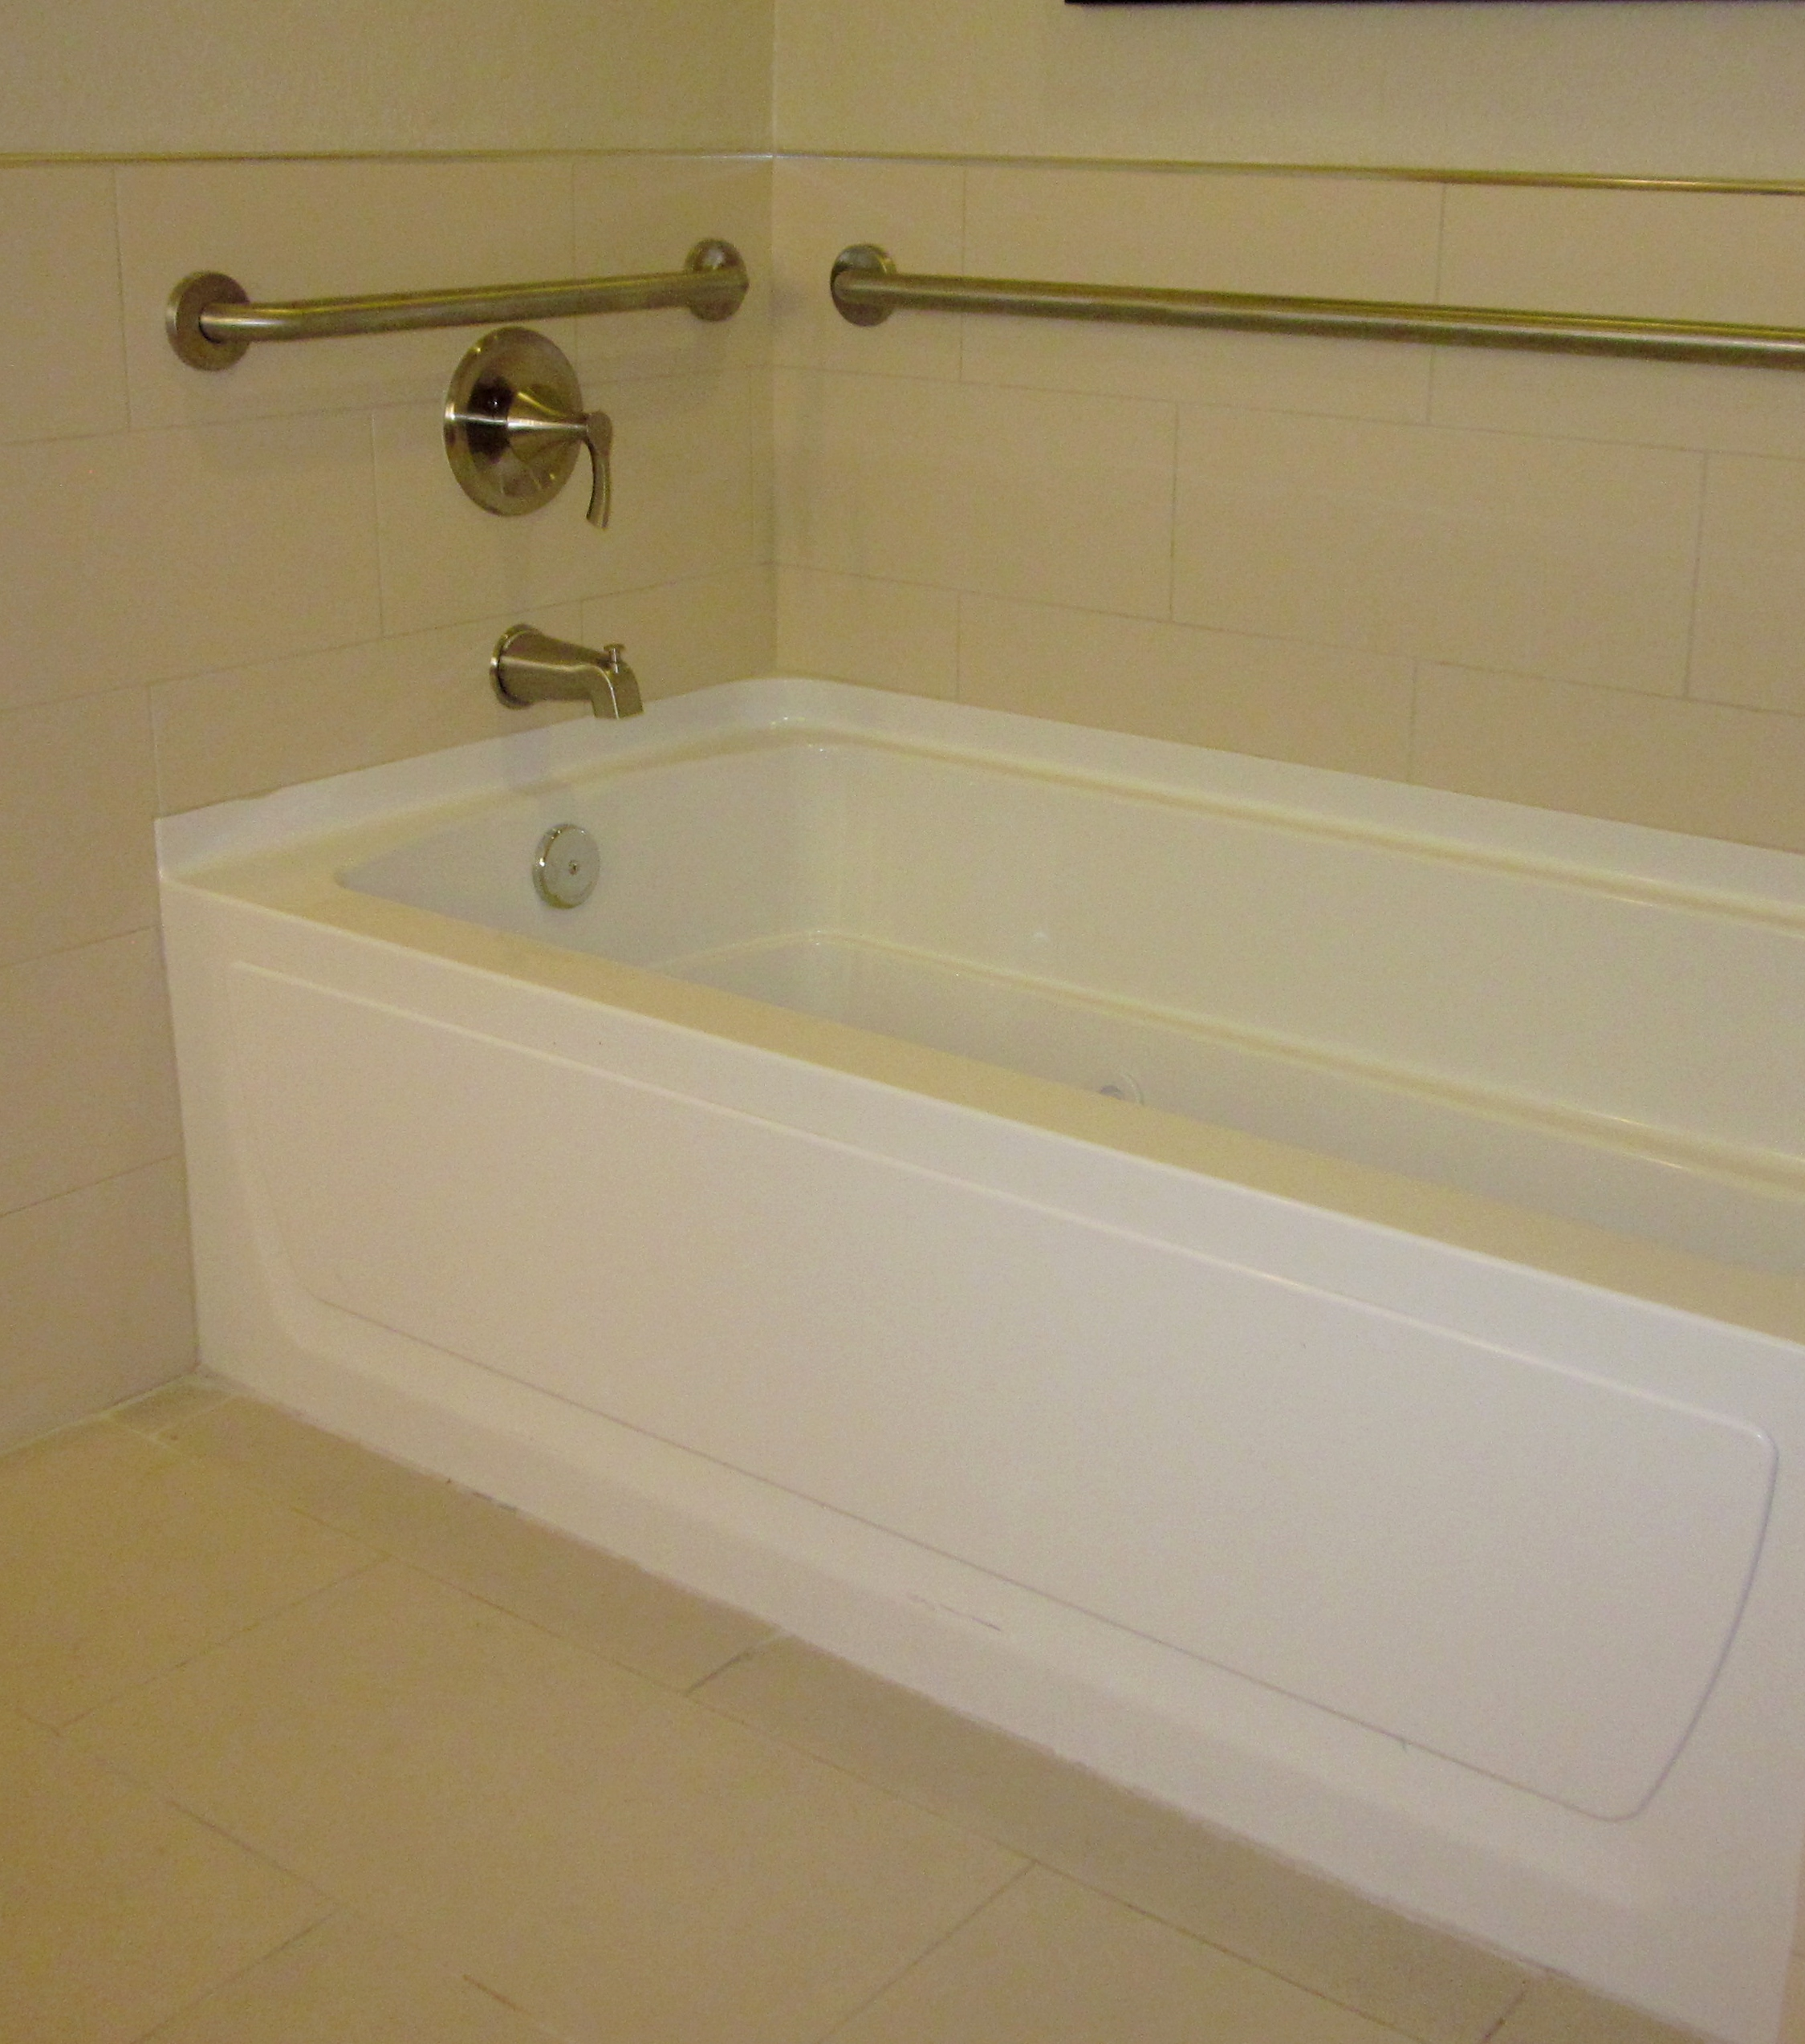 Accessible Bathroom | Disability Smart Solutions, Access Consultants